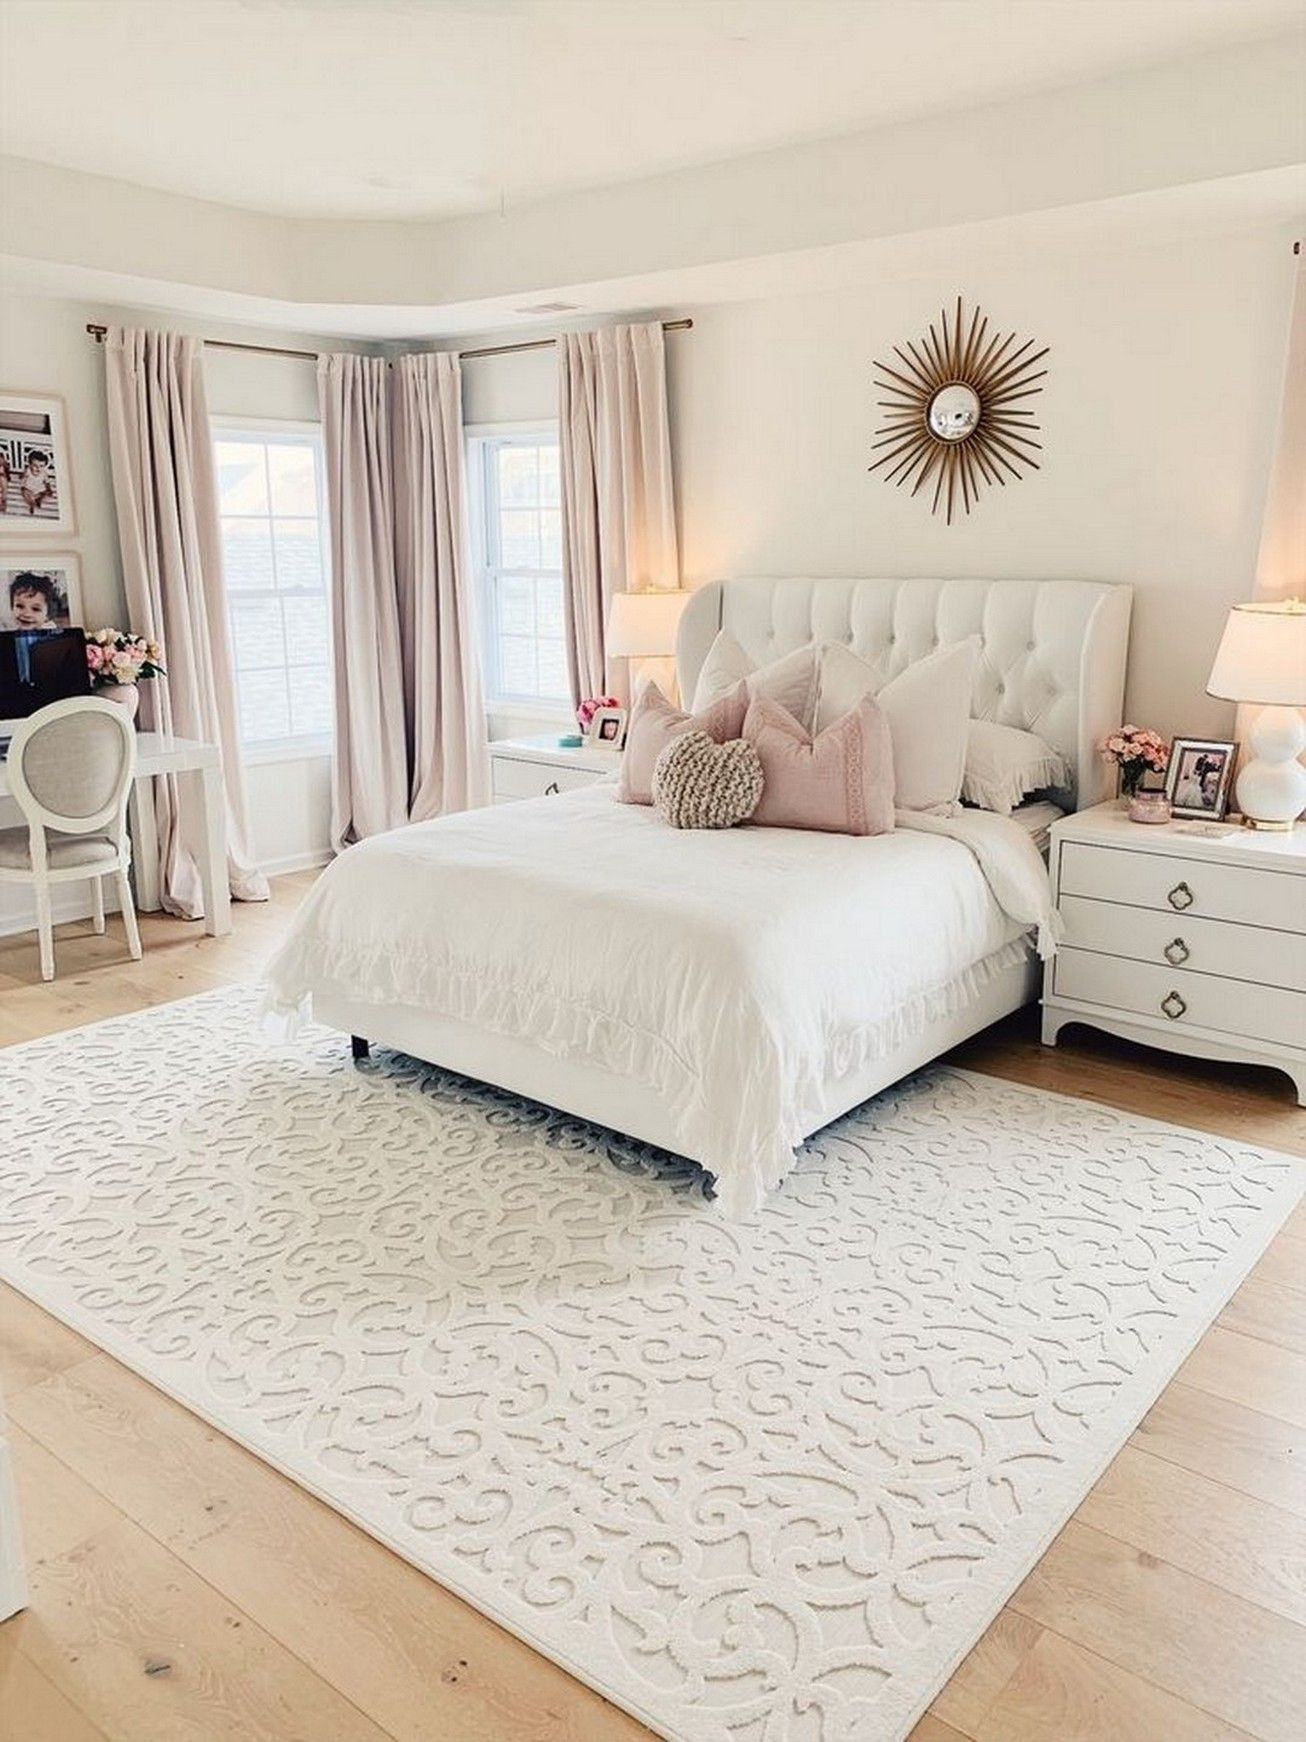 Get Ready For Massive Home Insurance Price Hikes Home Designs In 2021 Bedroom Decor Master Bedroom Makeover Warm Home Decor Home decor for master bedroom